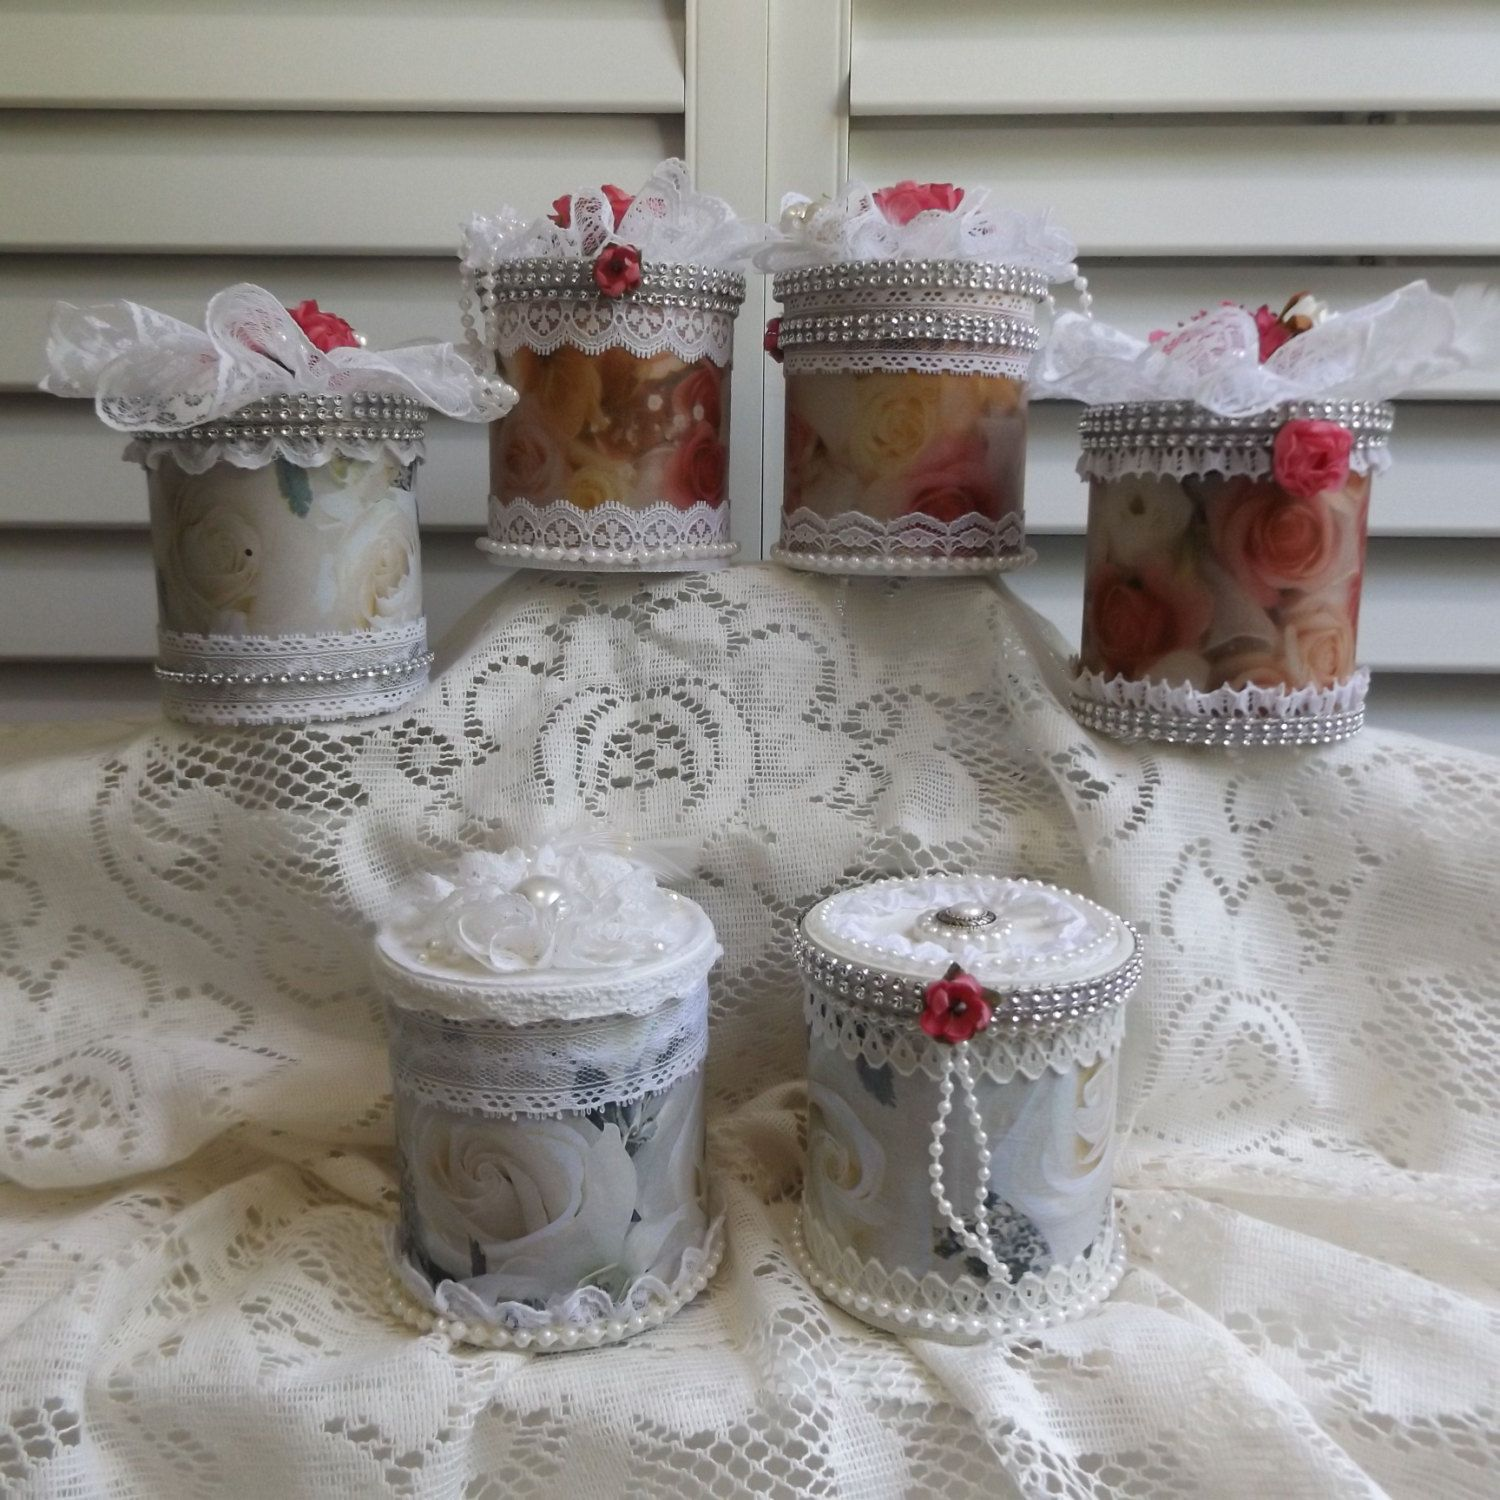 Upcycledrepurposed 6 Cans Wedding Centerpieces Favors Table D